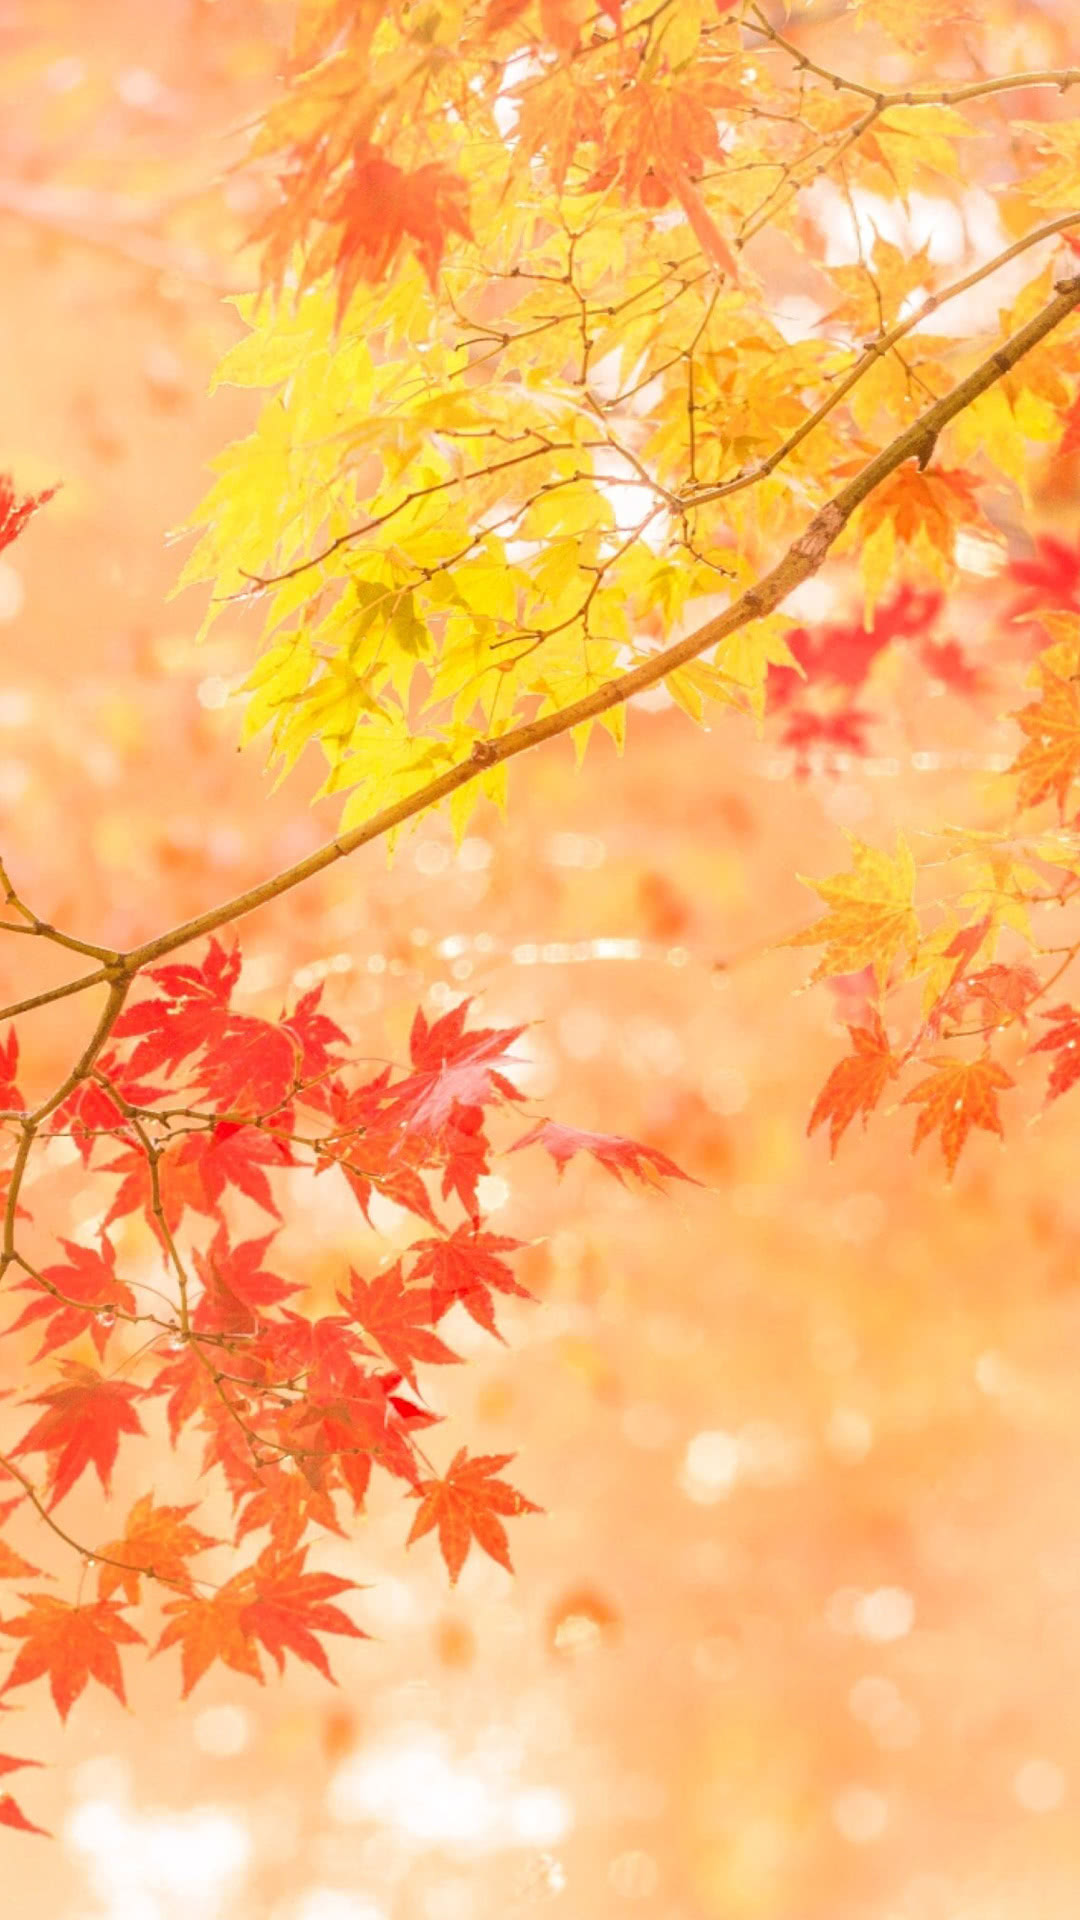 Glowing Autumn Leaves Iphone Wallpaper